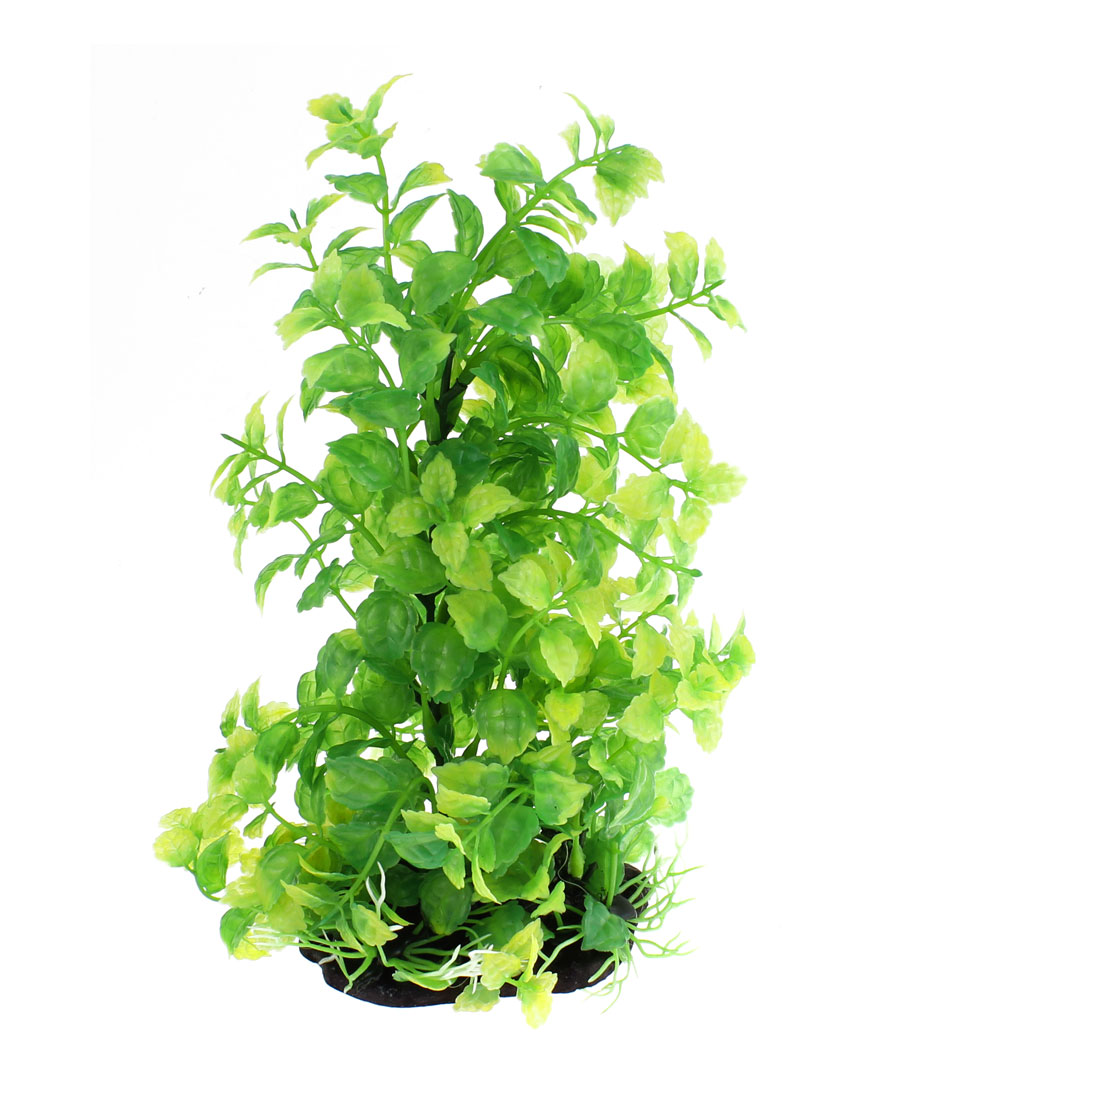 Aquarium Plastic Emulational Underwater Plant Decoration Green 23 x 15cm